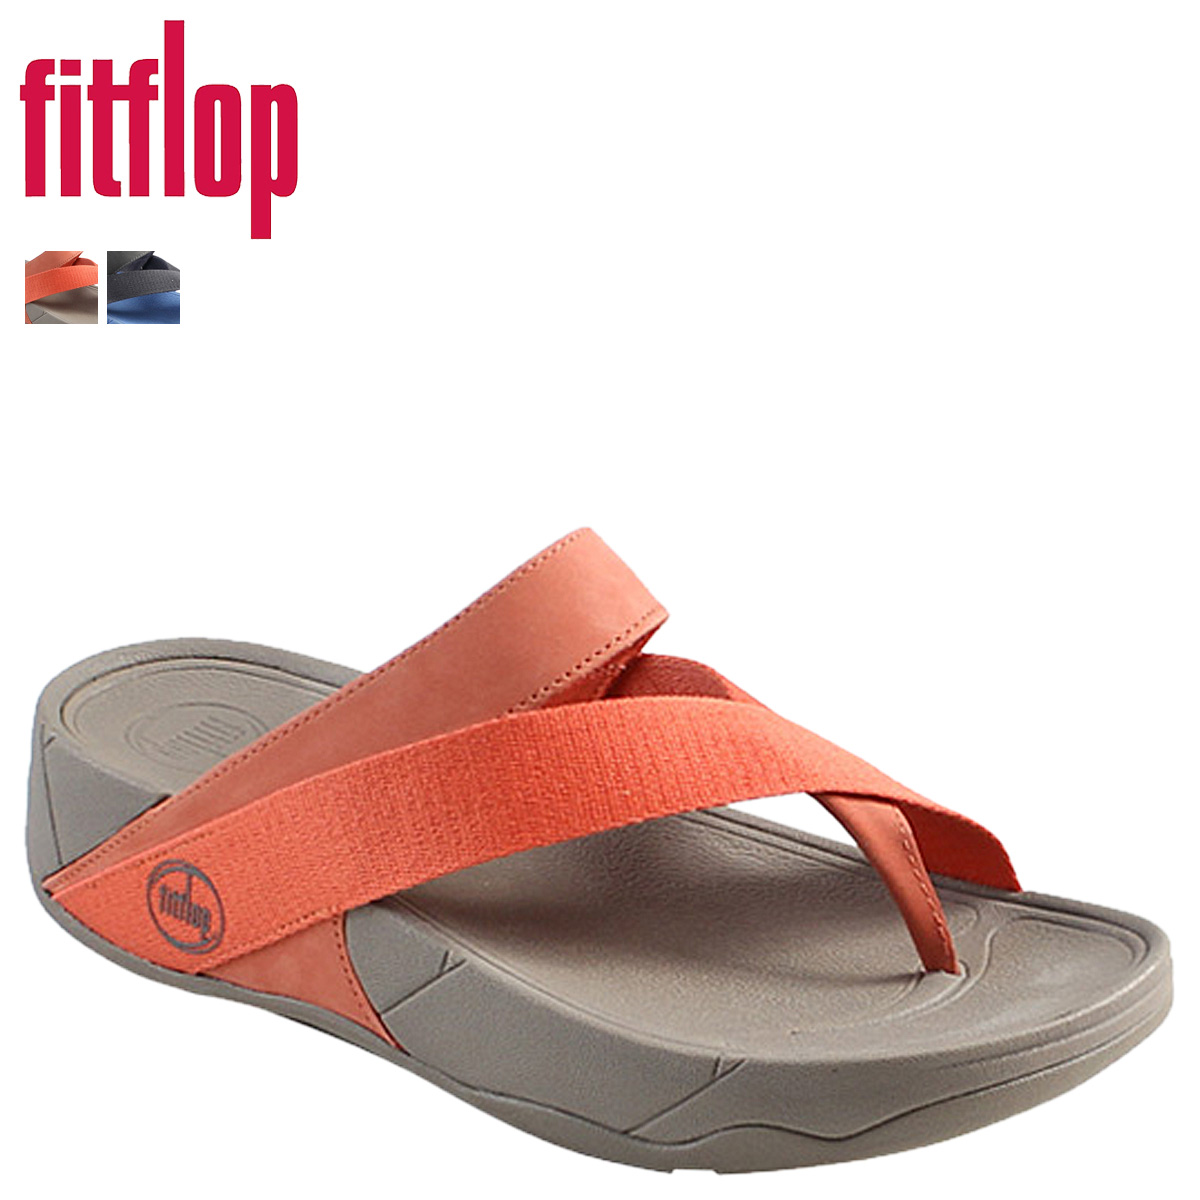 classic fit 5b8a8 f3168 Fit flops FitFlop Sandals 185-211 185-225 SPORT SLING cotton women's Sling